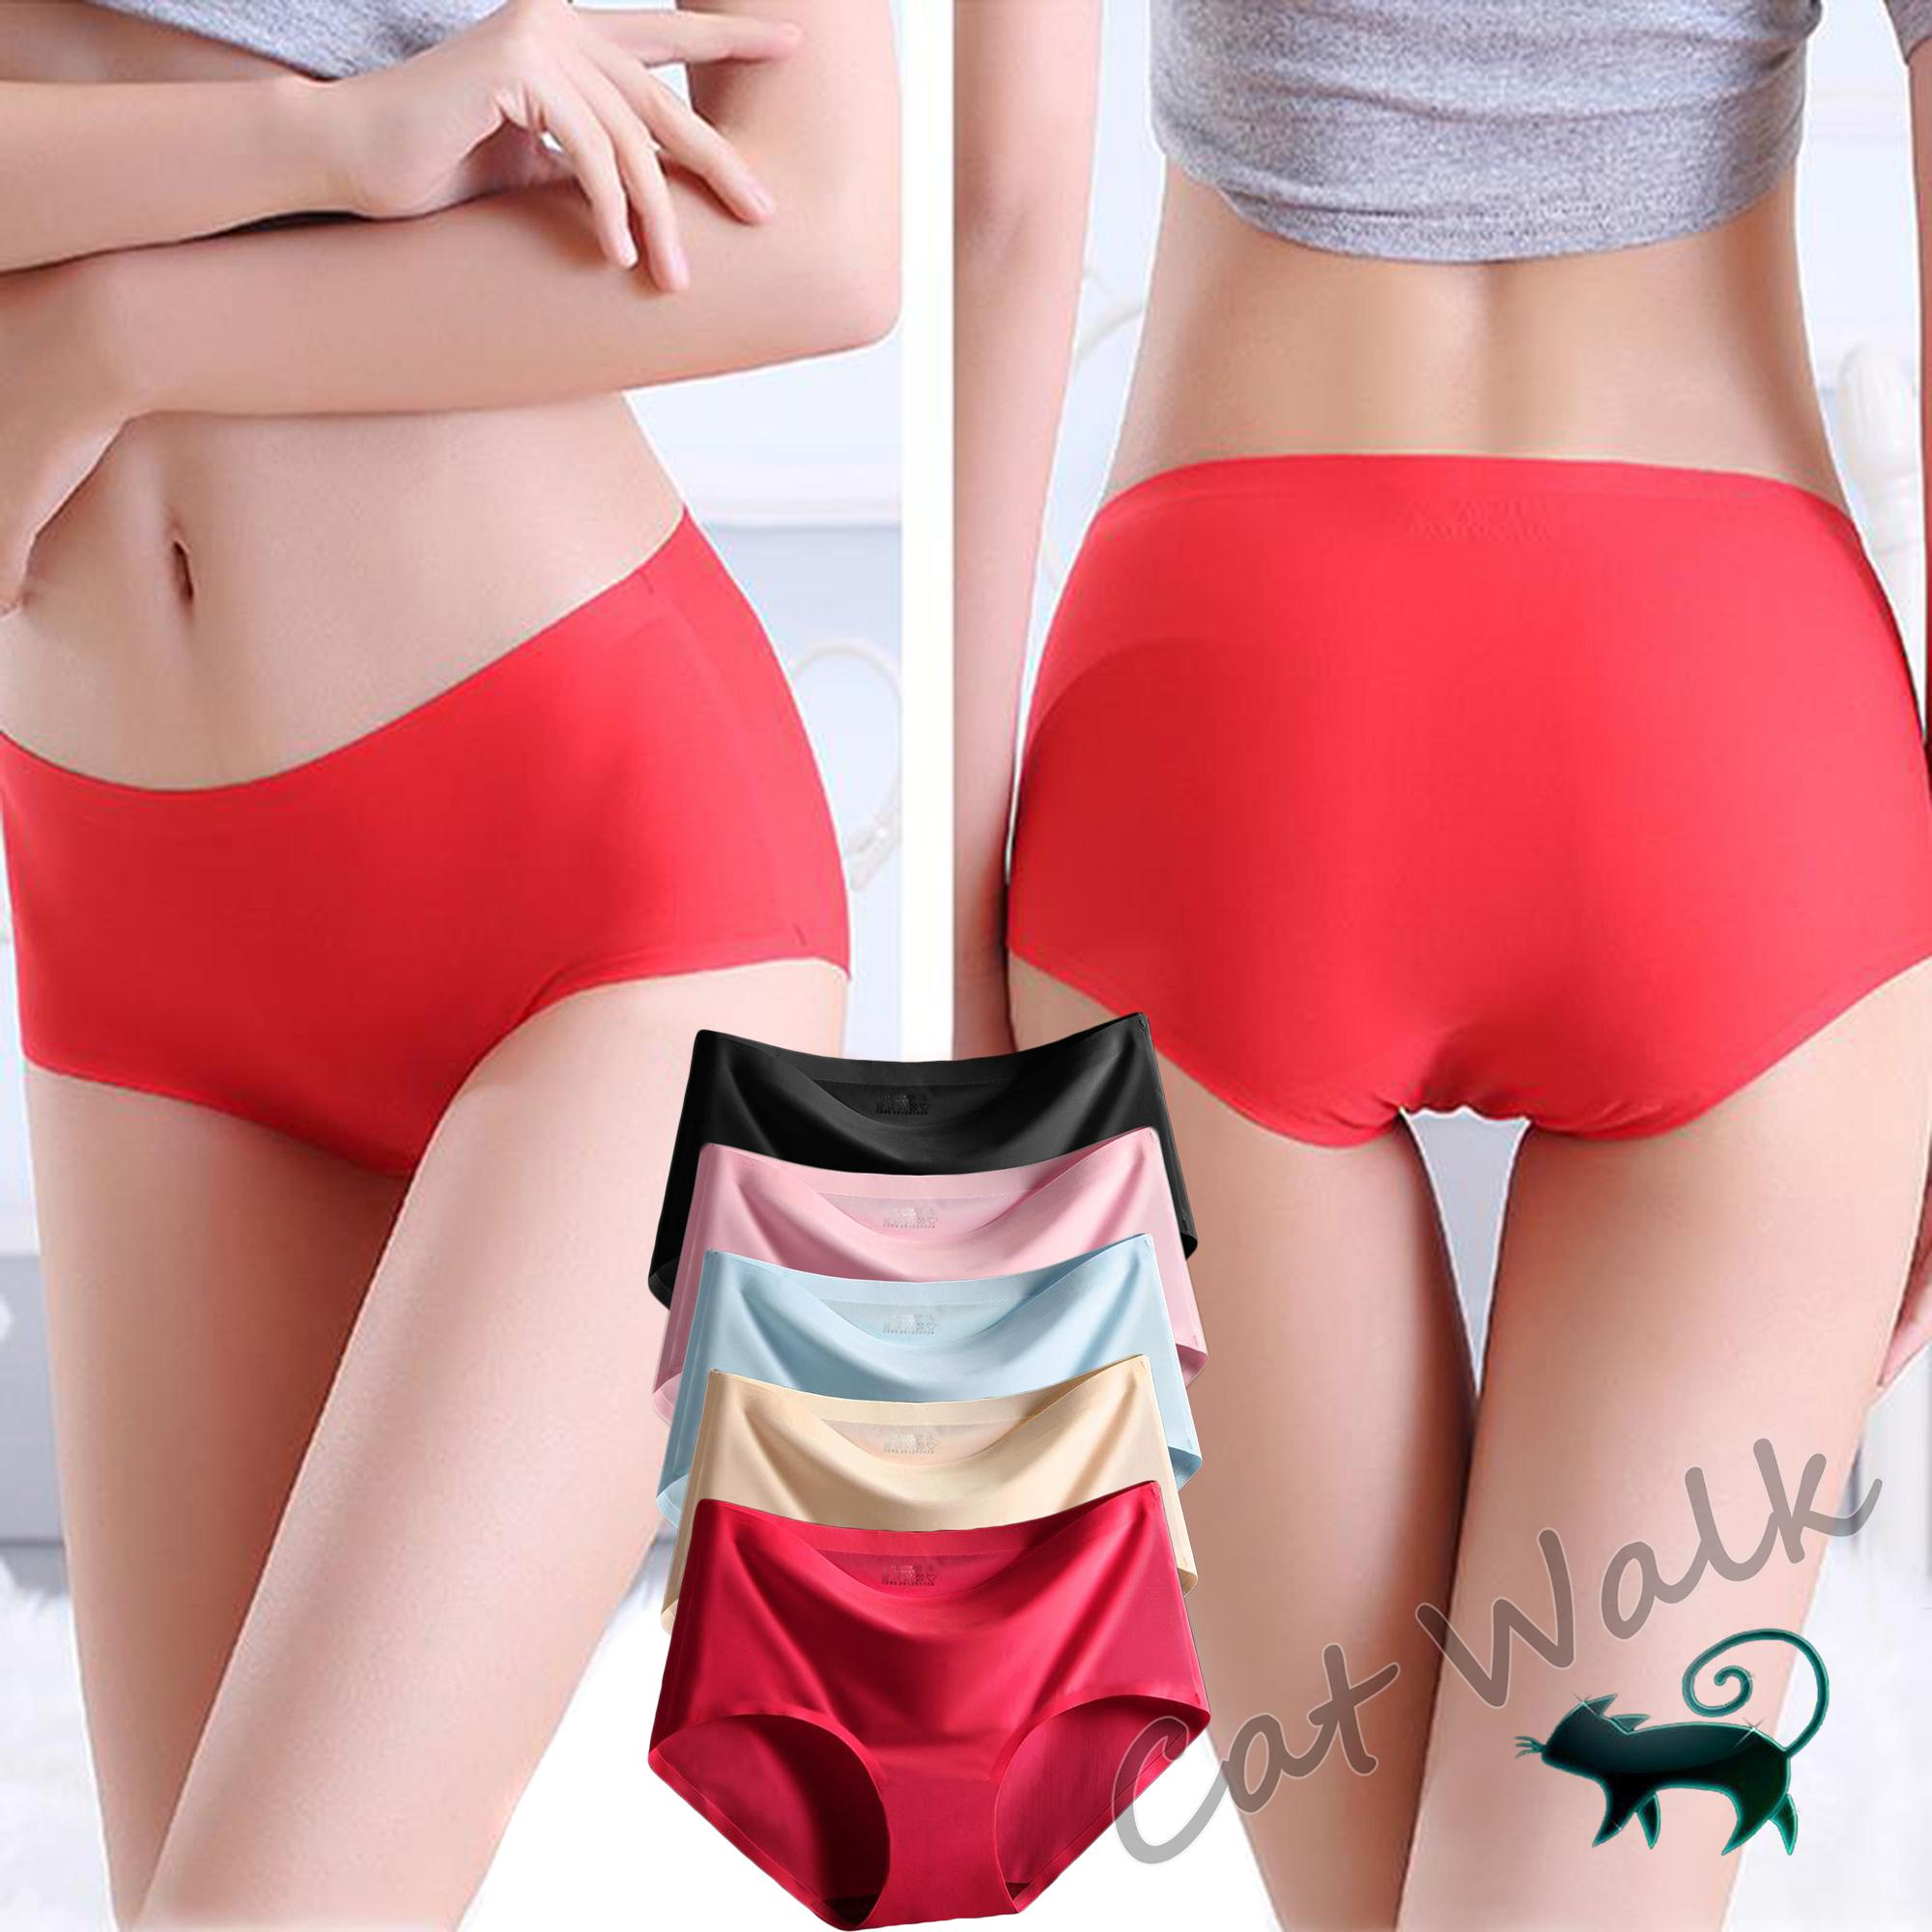 99d7ecdcb4 Panties for Women for sale - Womens Panties Online Deals & Prices in ...